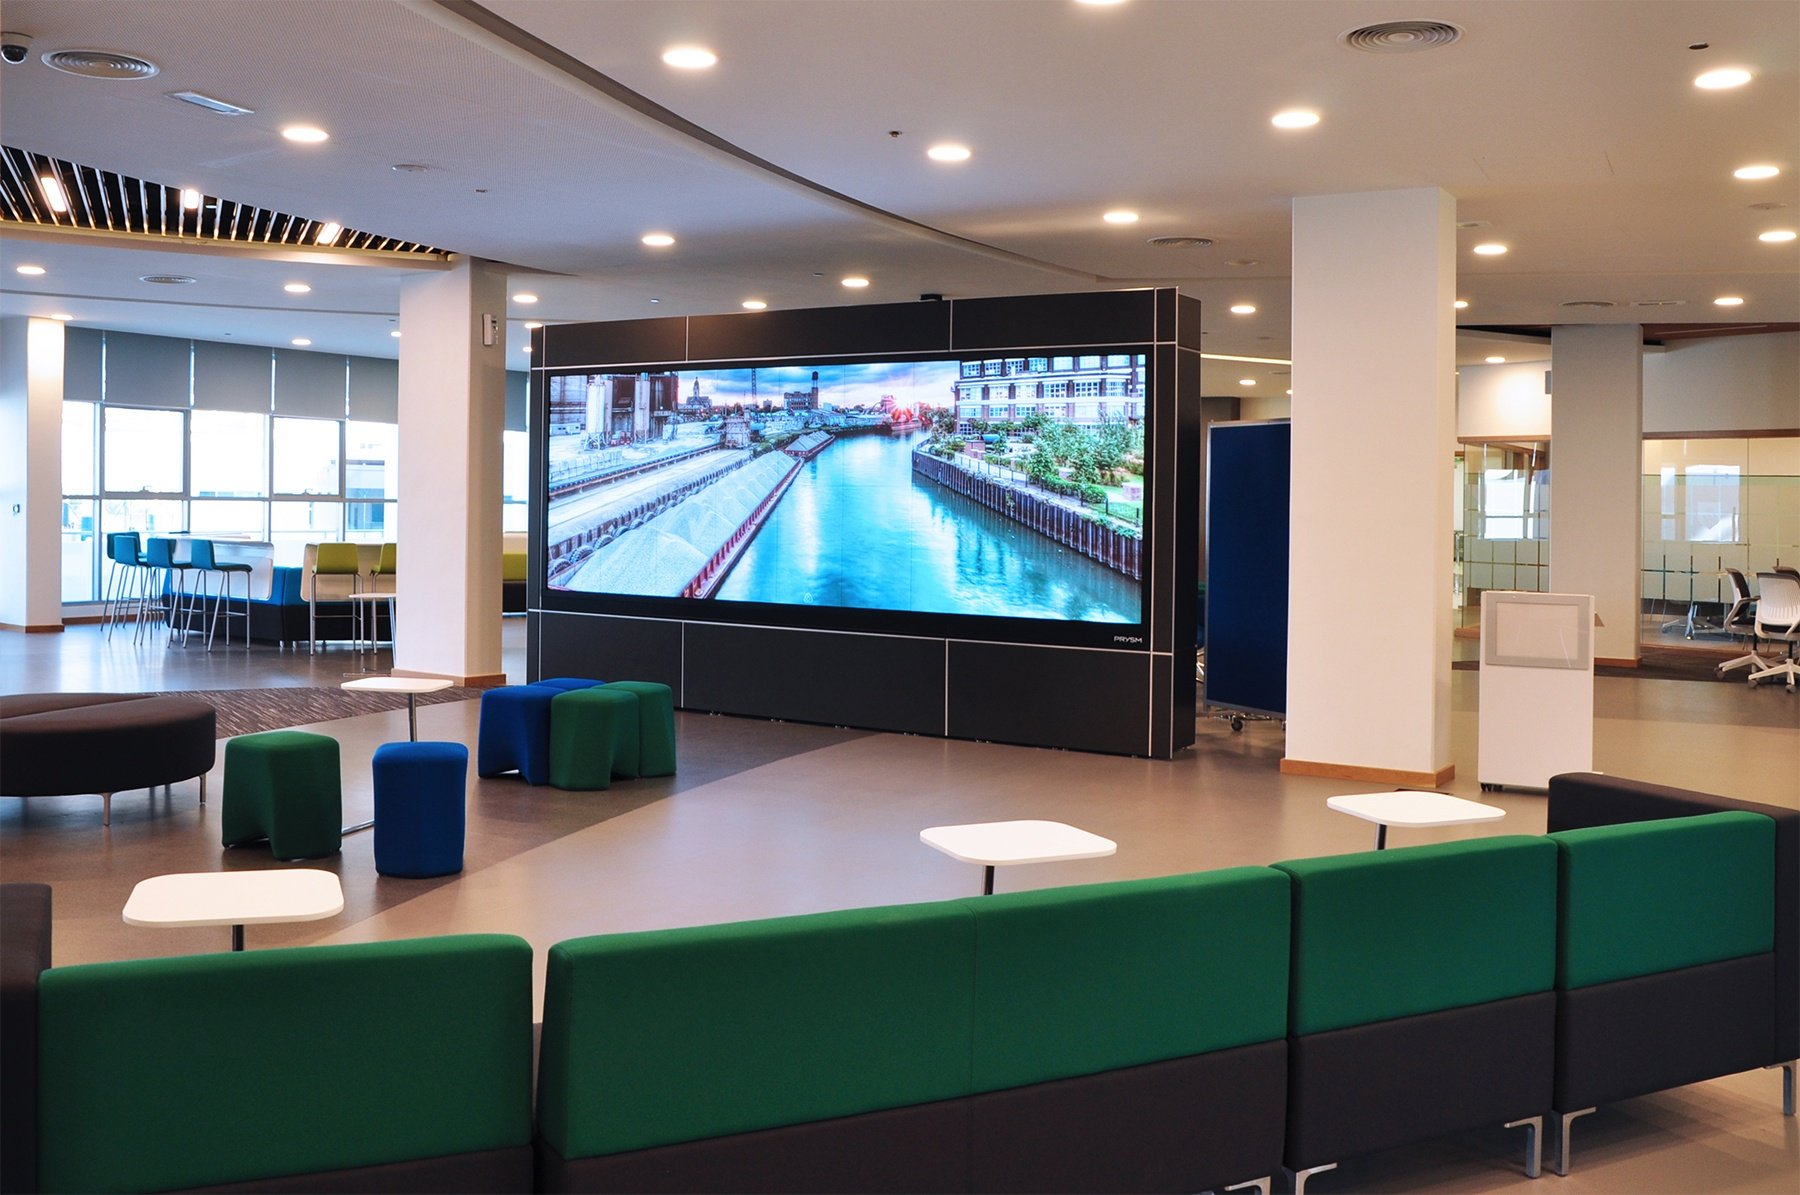 GEMS Education Selects Prysm for Groundbreaking Blended Learning Plaza